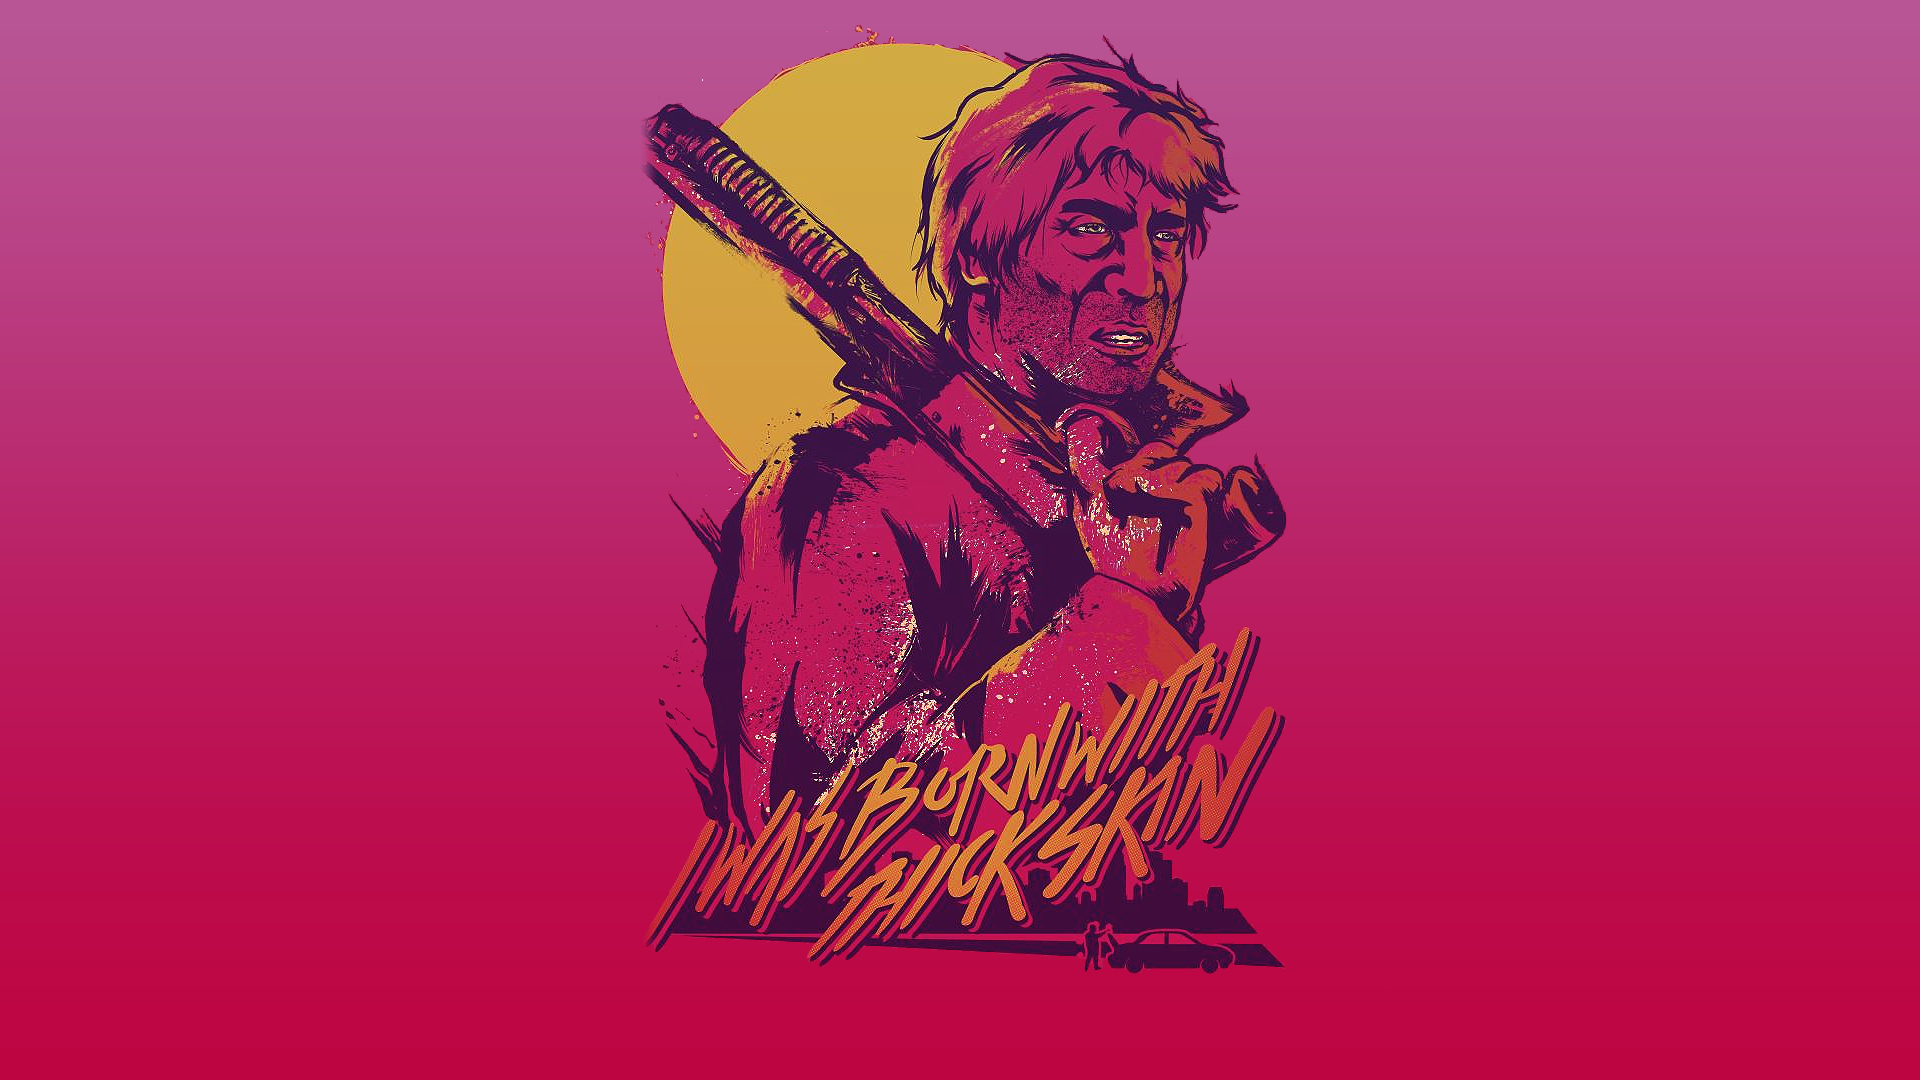 1920 Car Synthwave Wallpaper Hotline Miami 2 Wrong Number Hd Wallpaper Background